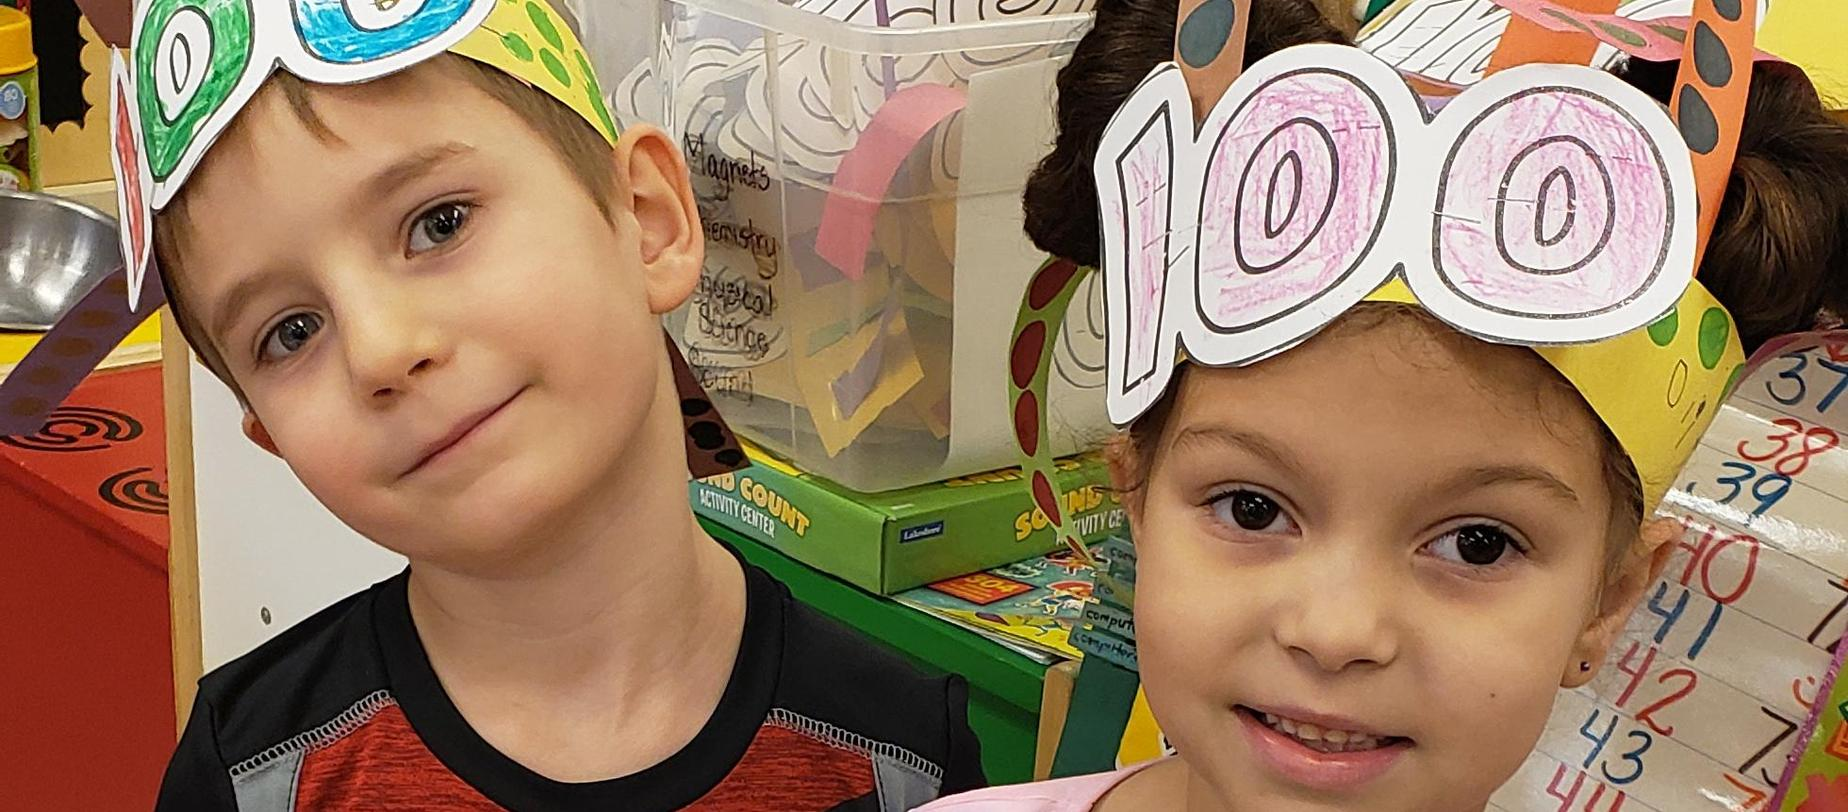 students celebrating the 100th day of school